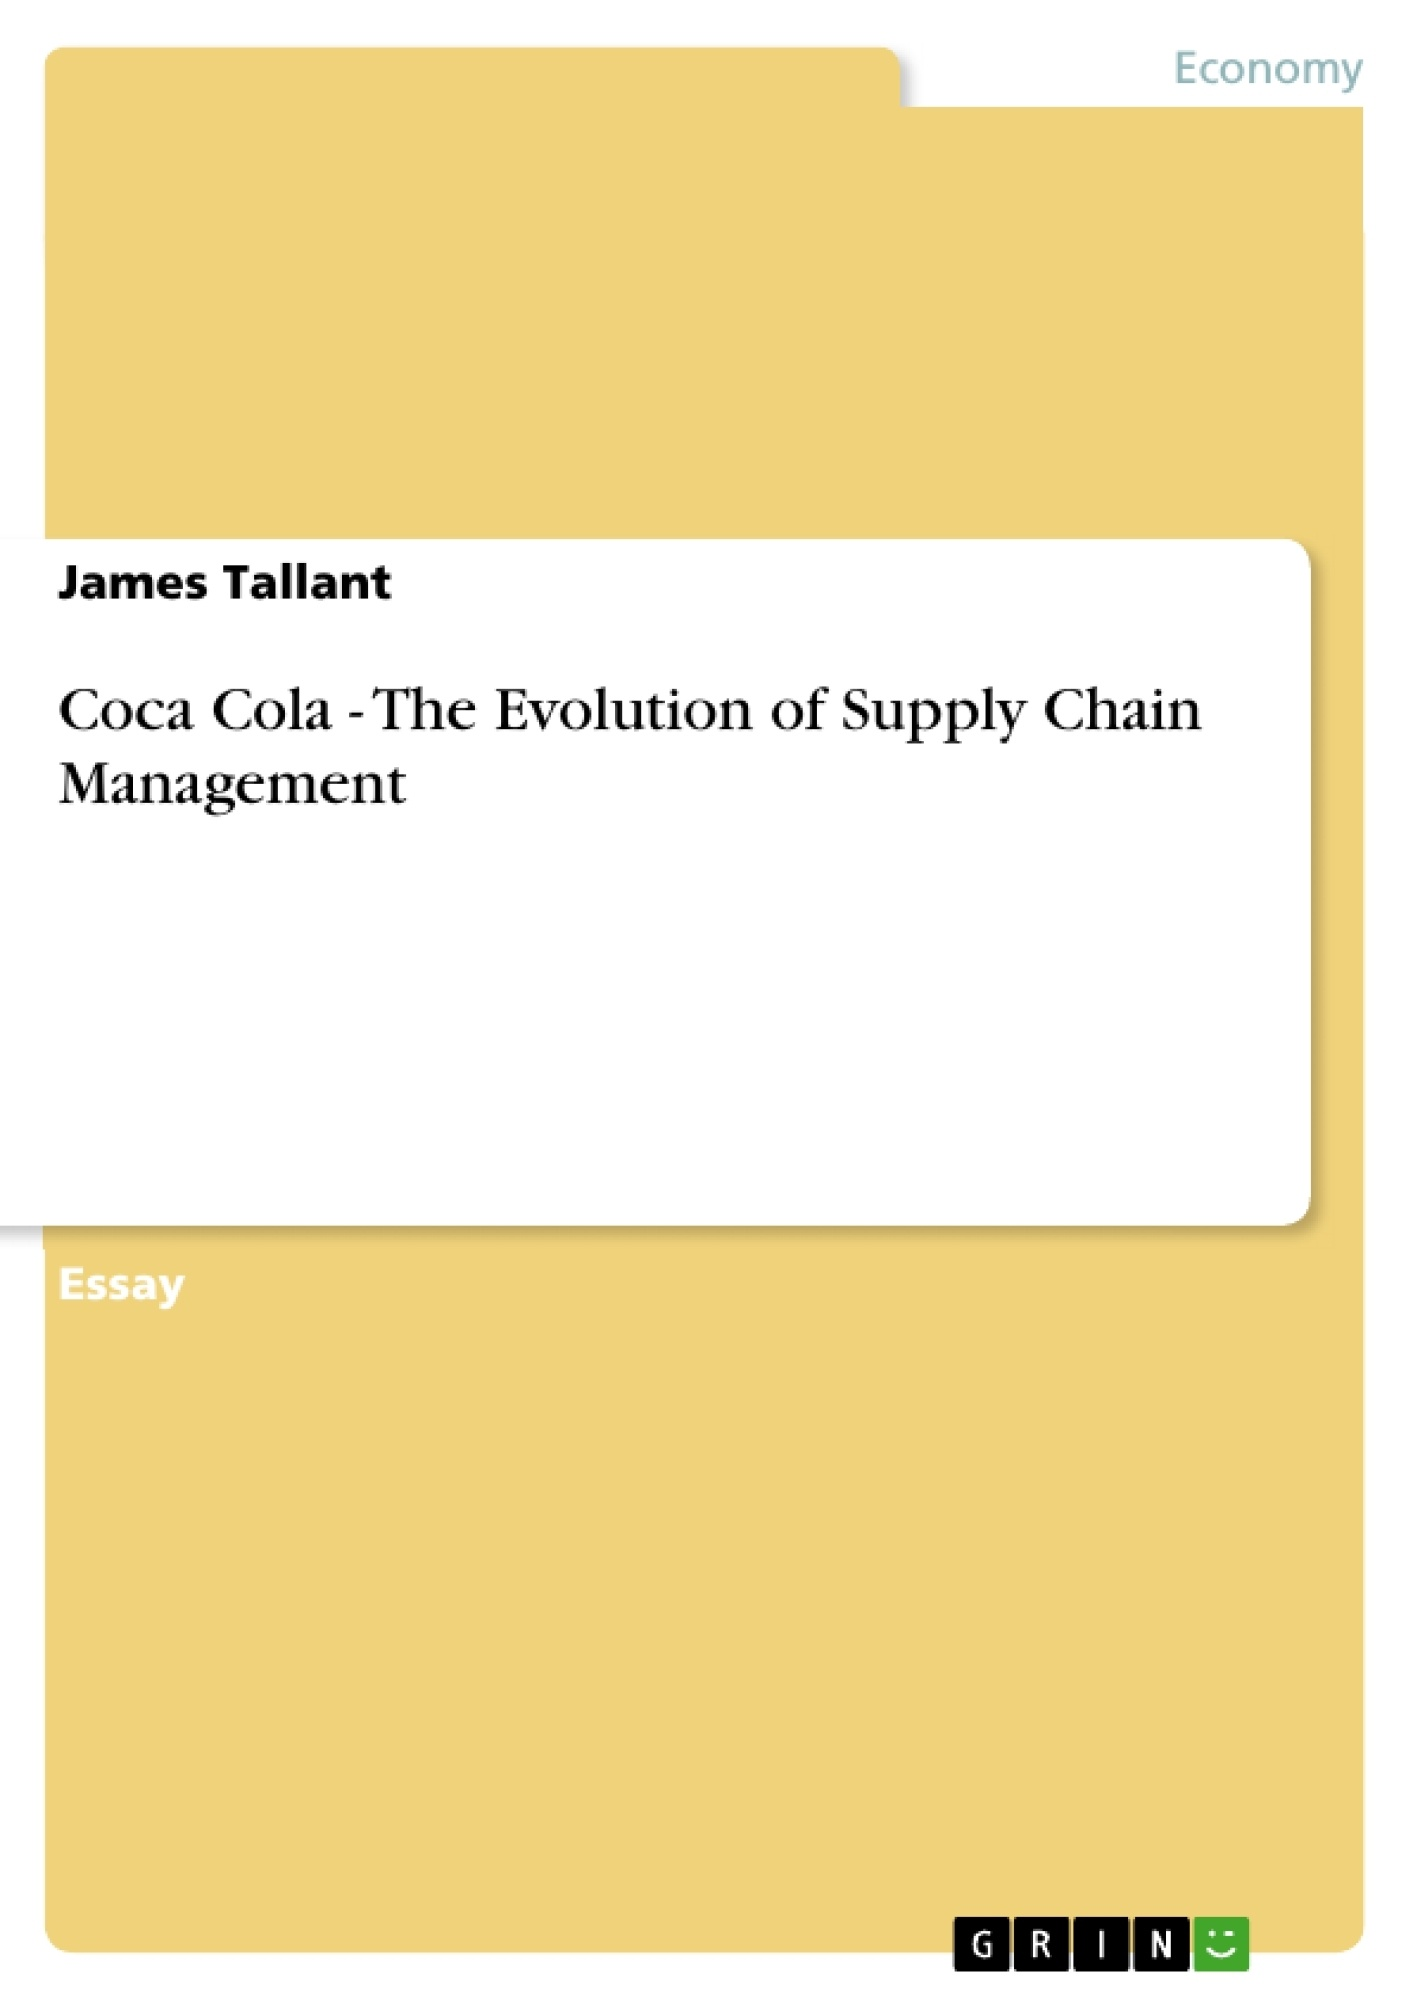 Dissertations in supply chain management